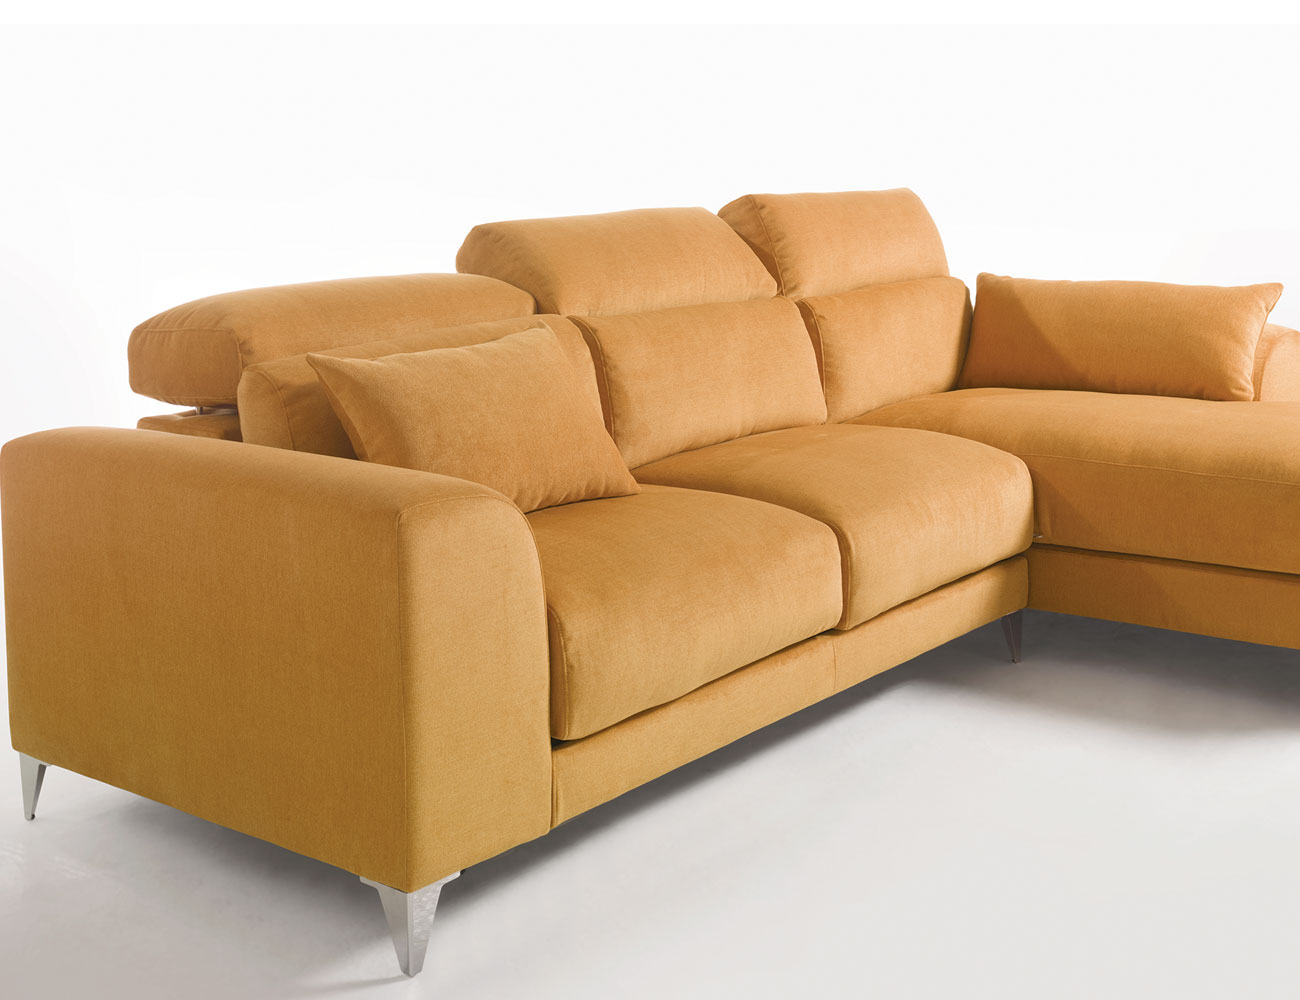 Sofa chaiselongue gran lujo decorativo patas altas amarillo 238